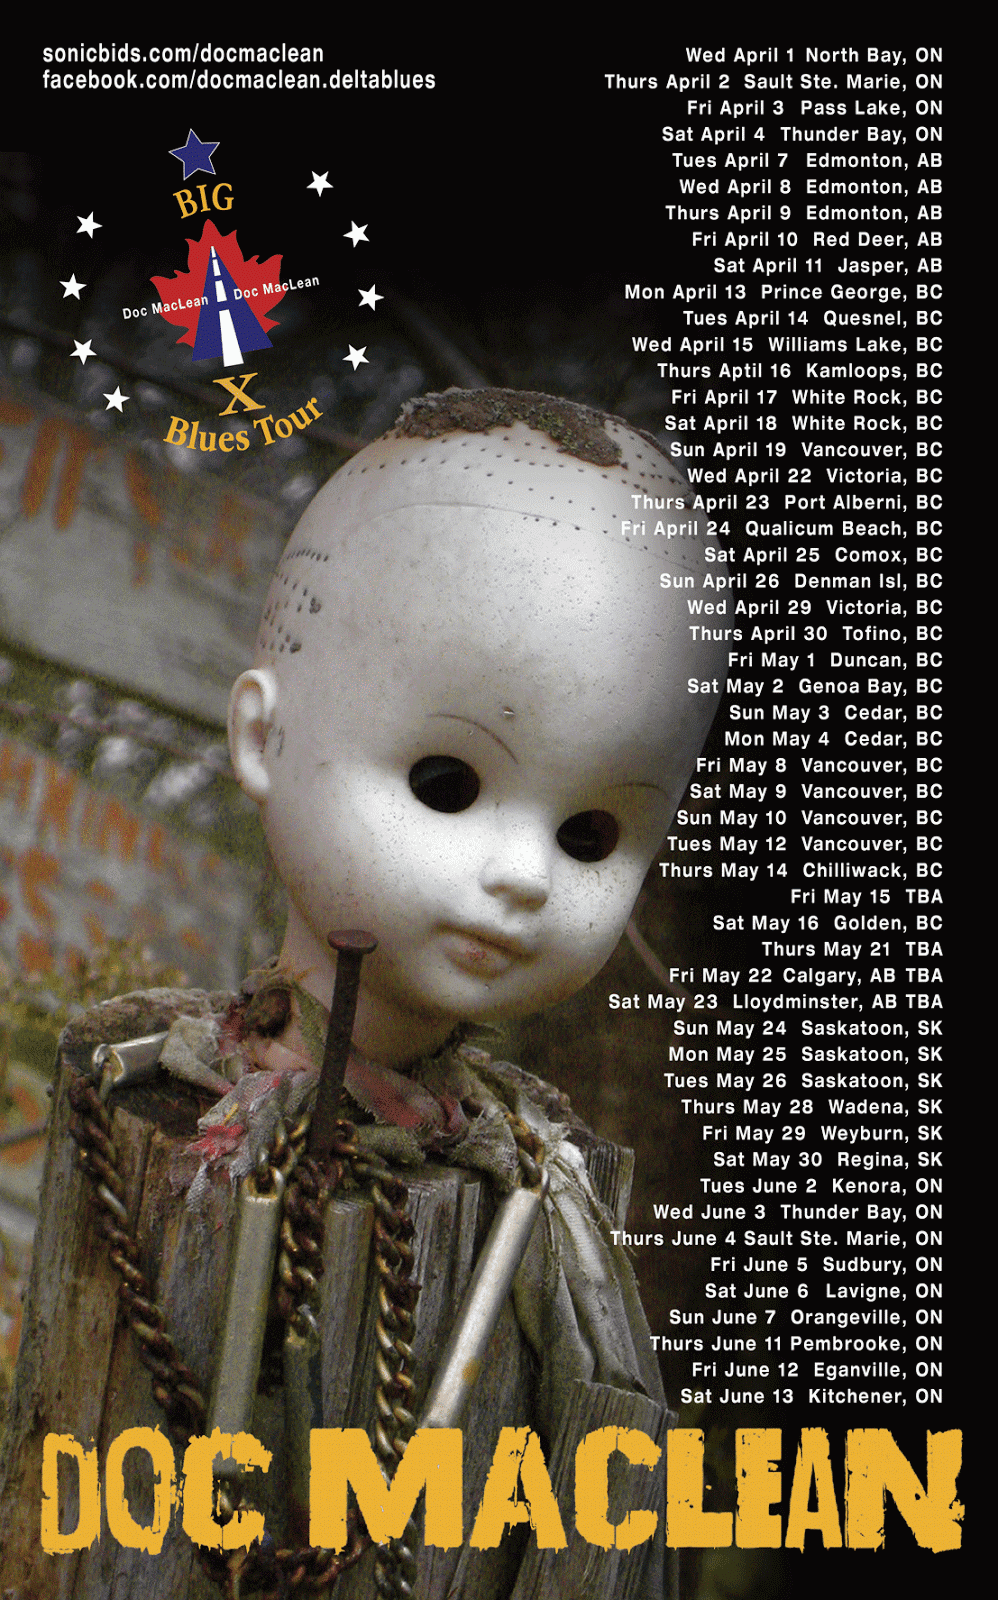 Tour Poster voodoo dates